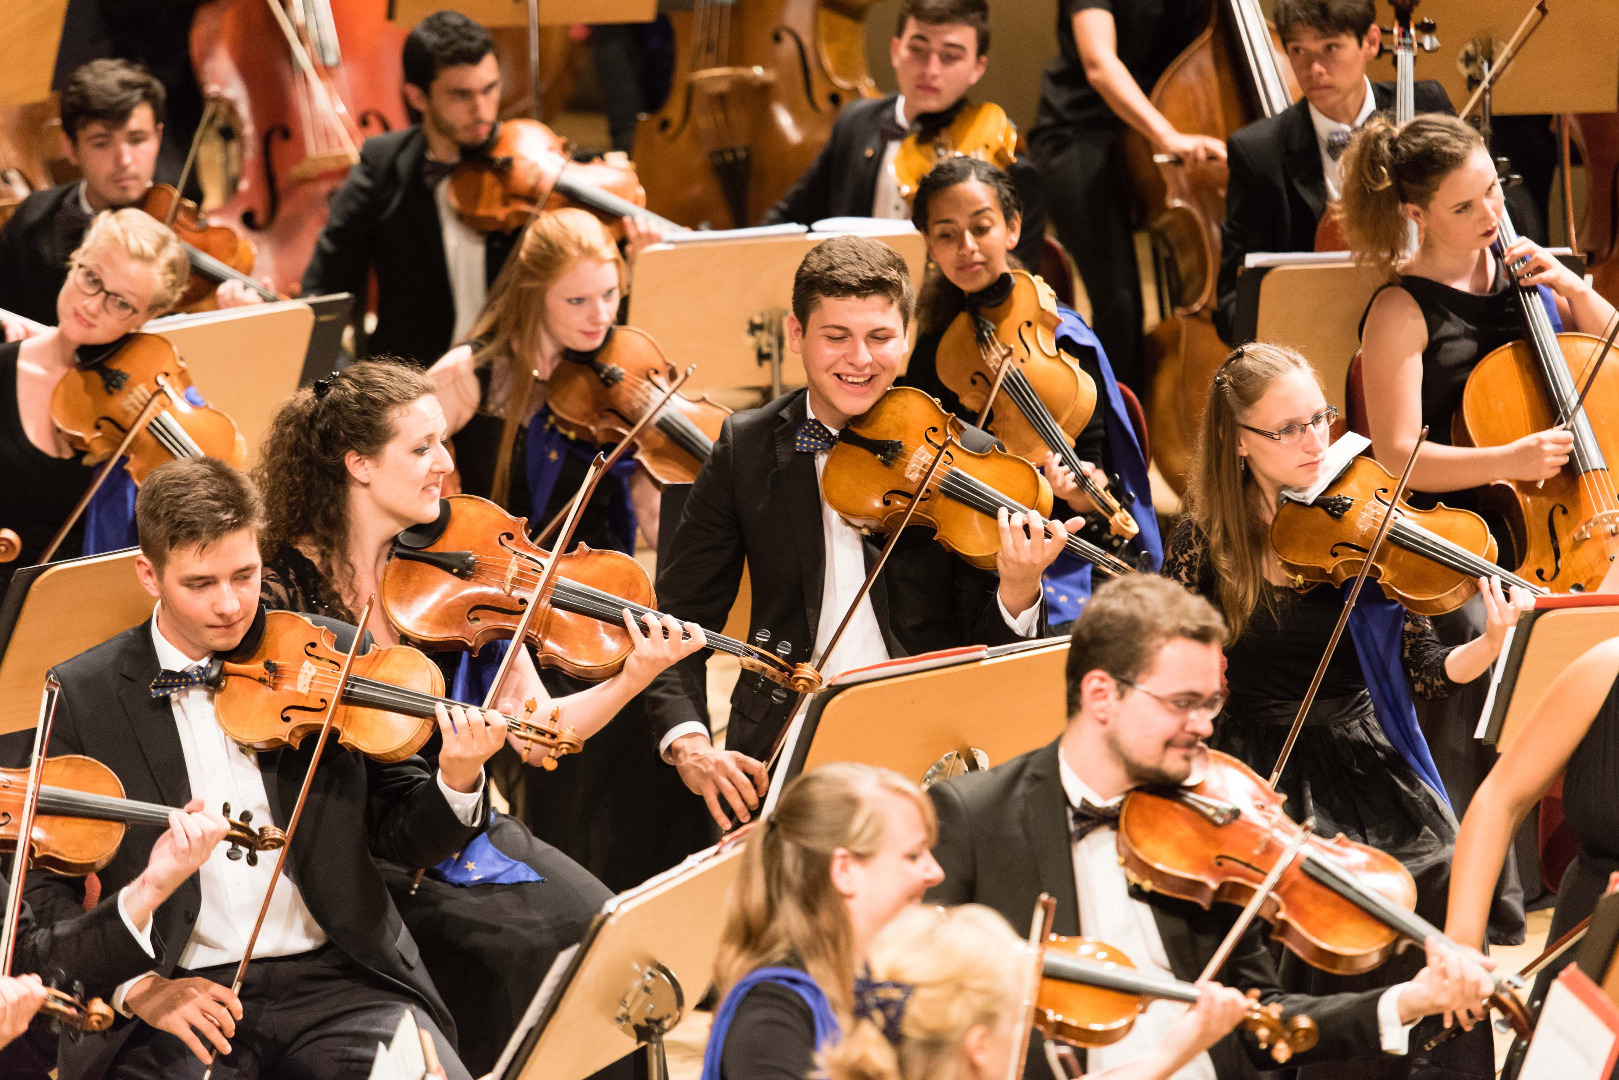 A new start for European Youth Orchestra